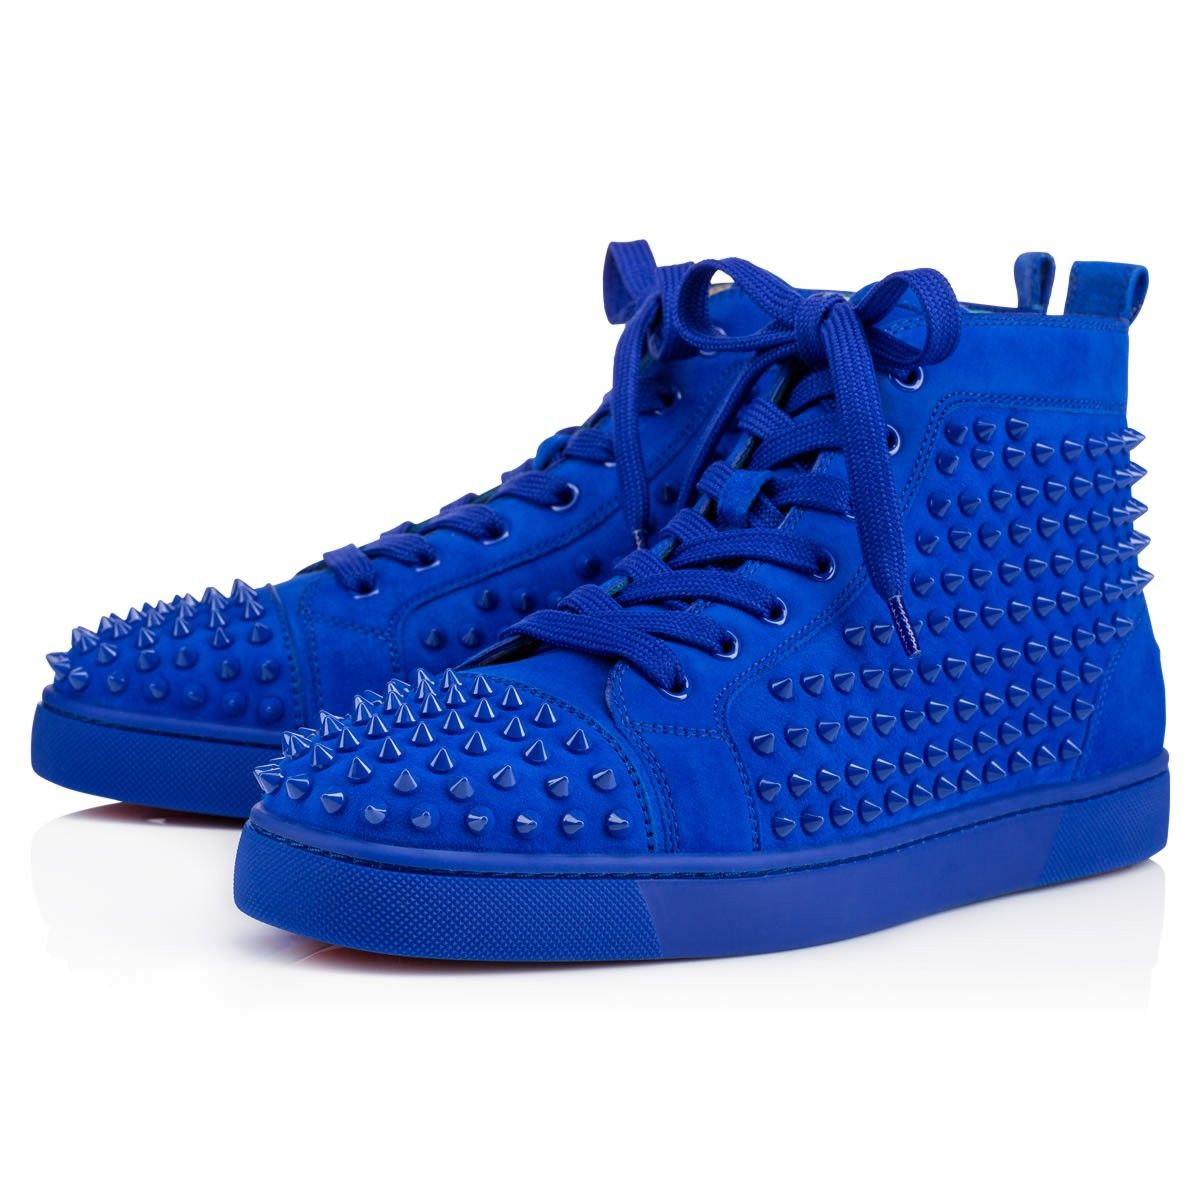 d0f2e713cca4 CHRISTIAN LOUBOUTIN Louis Suede Spikes